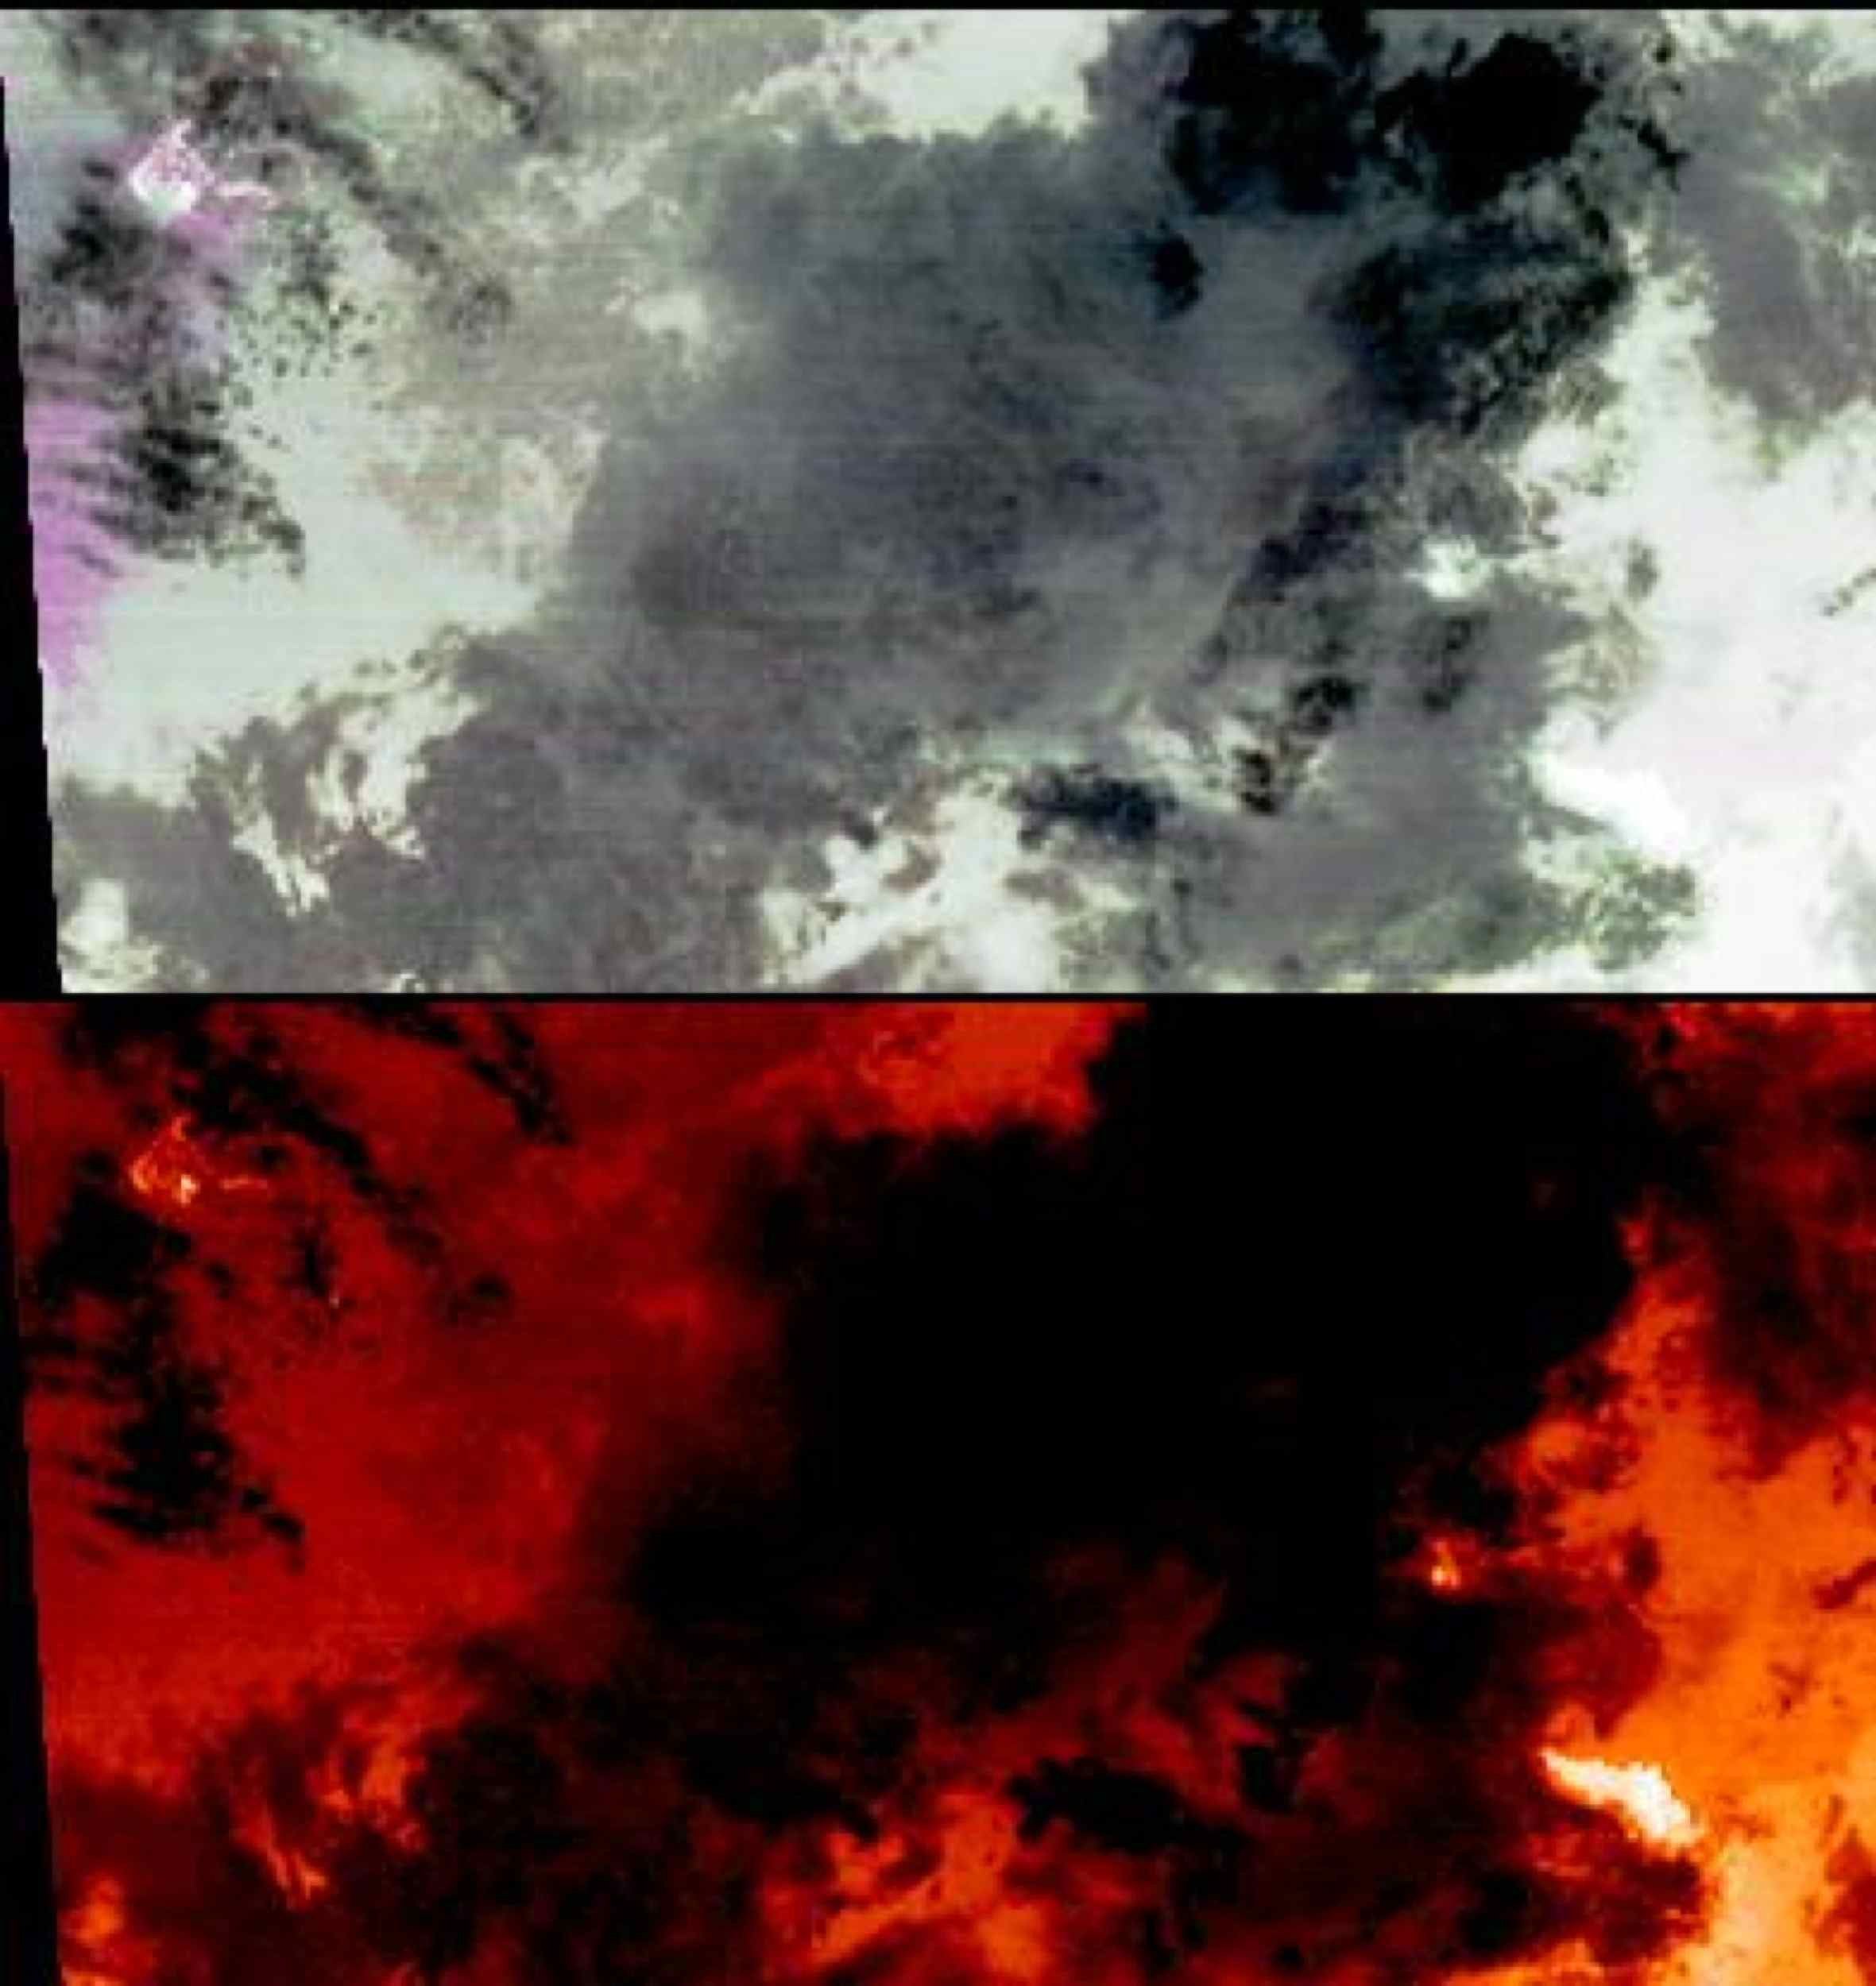 On the night of March 25, 2008, the Advanced Spaceborne Thermal Emission and Reflection Radiometer instrument on NASA's Terra satellite captured these thermal infrared images of Kilauea volcano on Hawaii's Big Island. Kilauea was active at two locations.